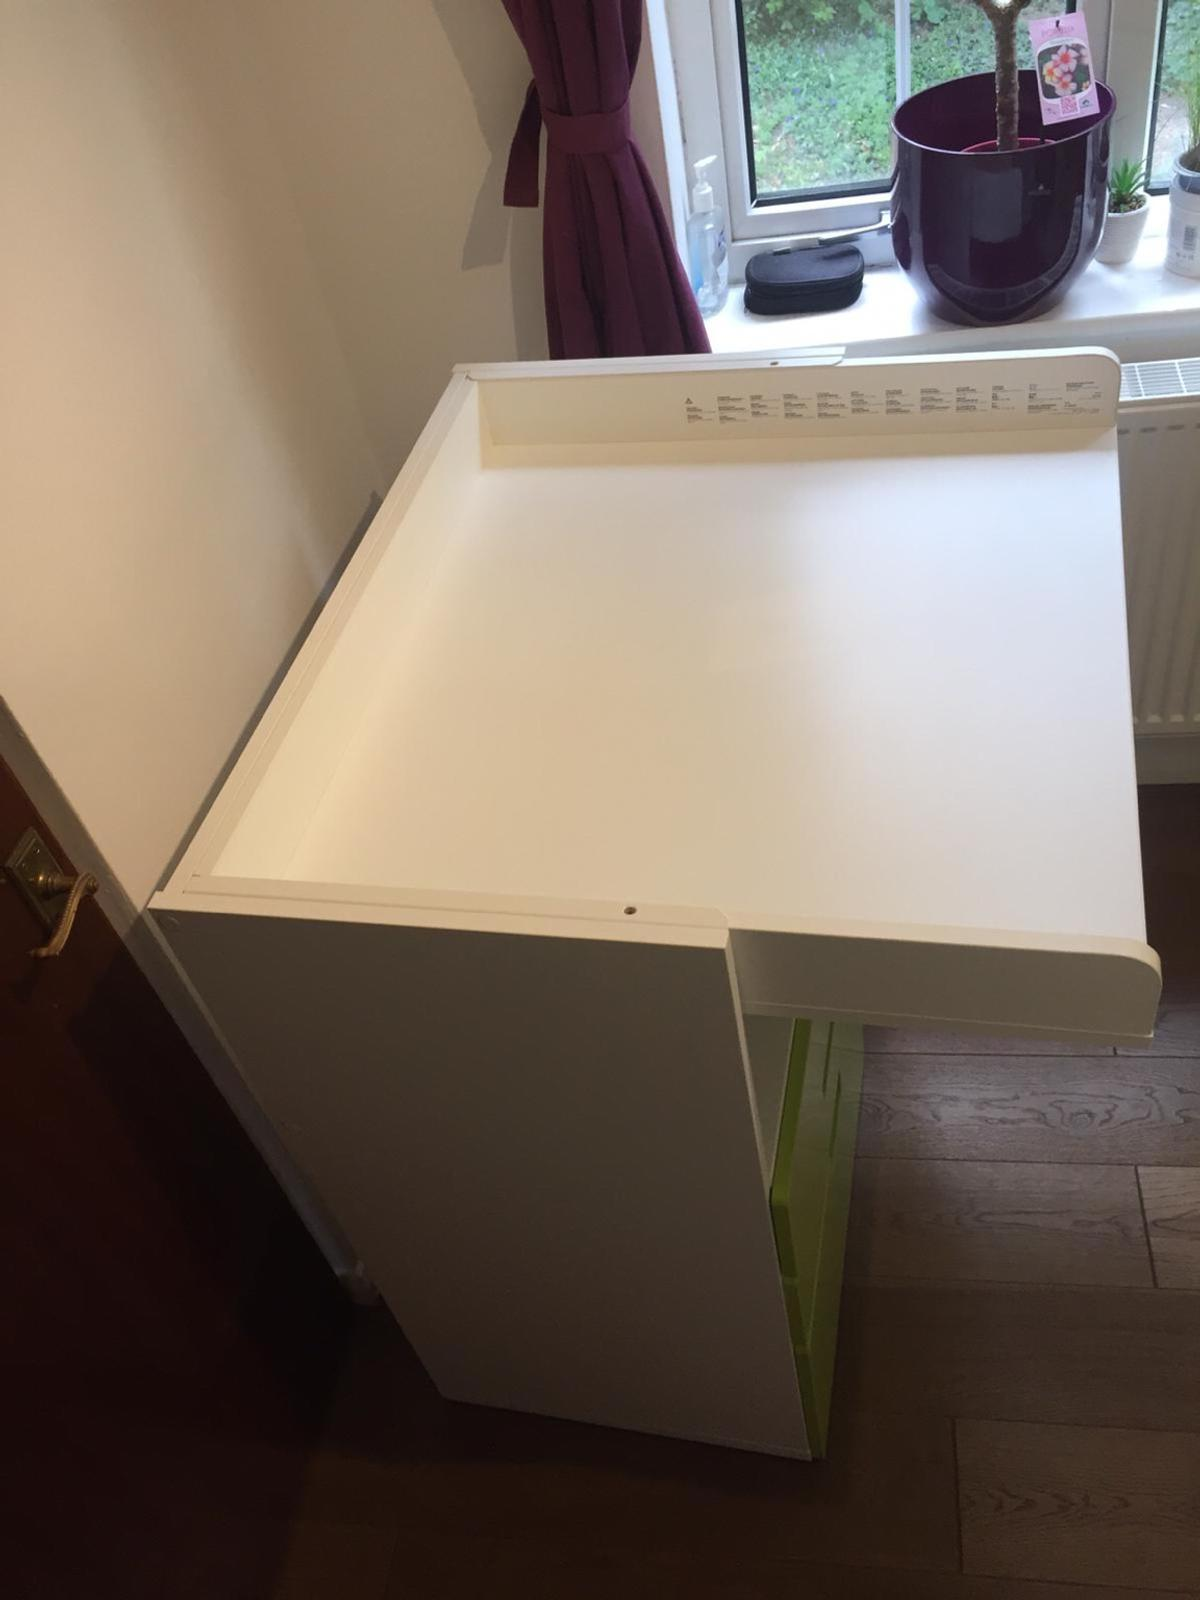 20bb8aee86da Ikea-Changing table -FRITIDS/STUVA in KT17 Epsom and Ewell for ...